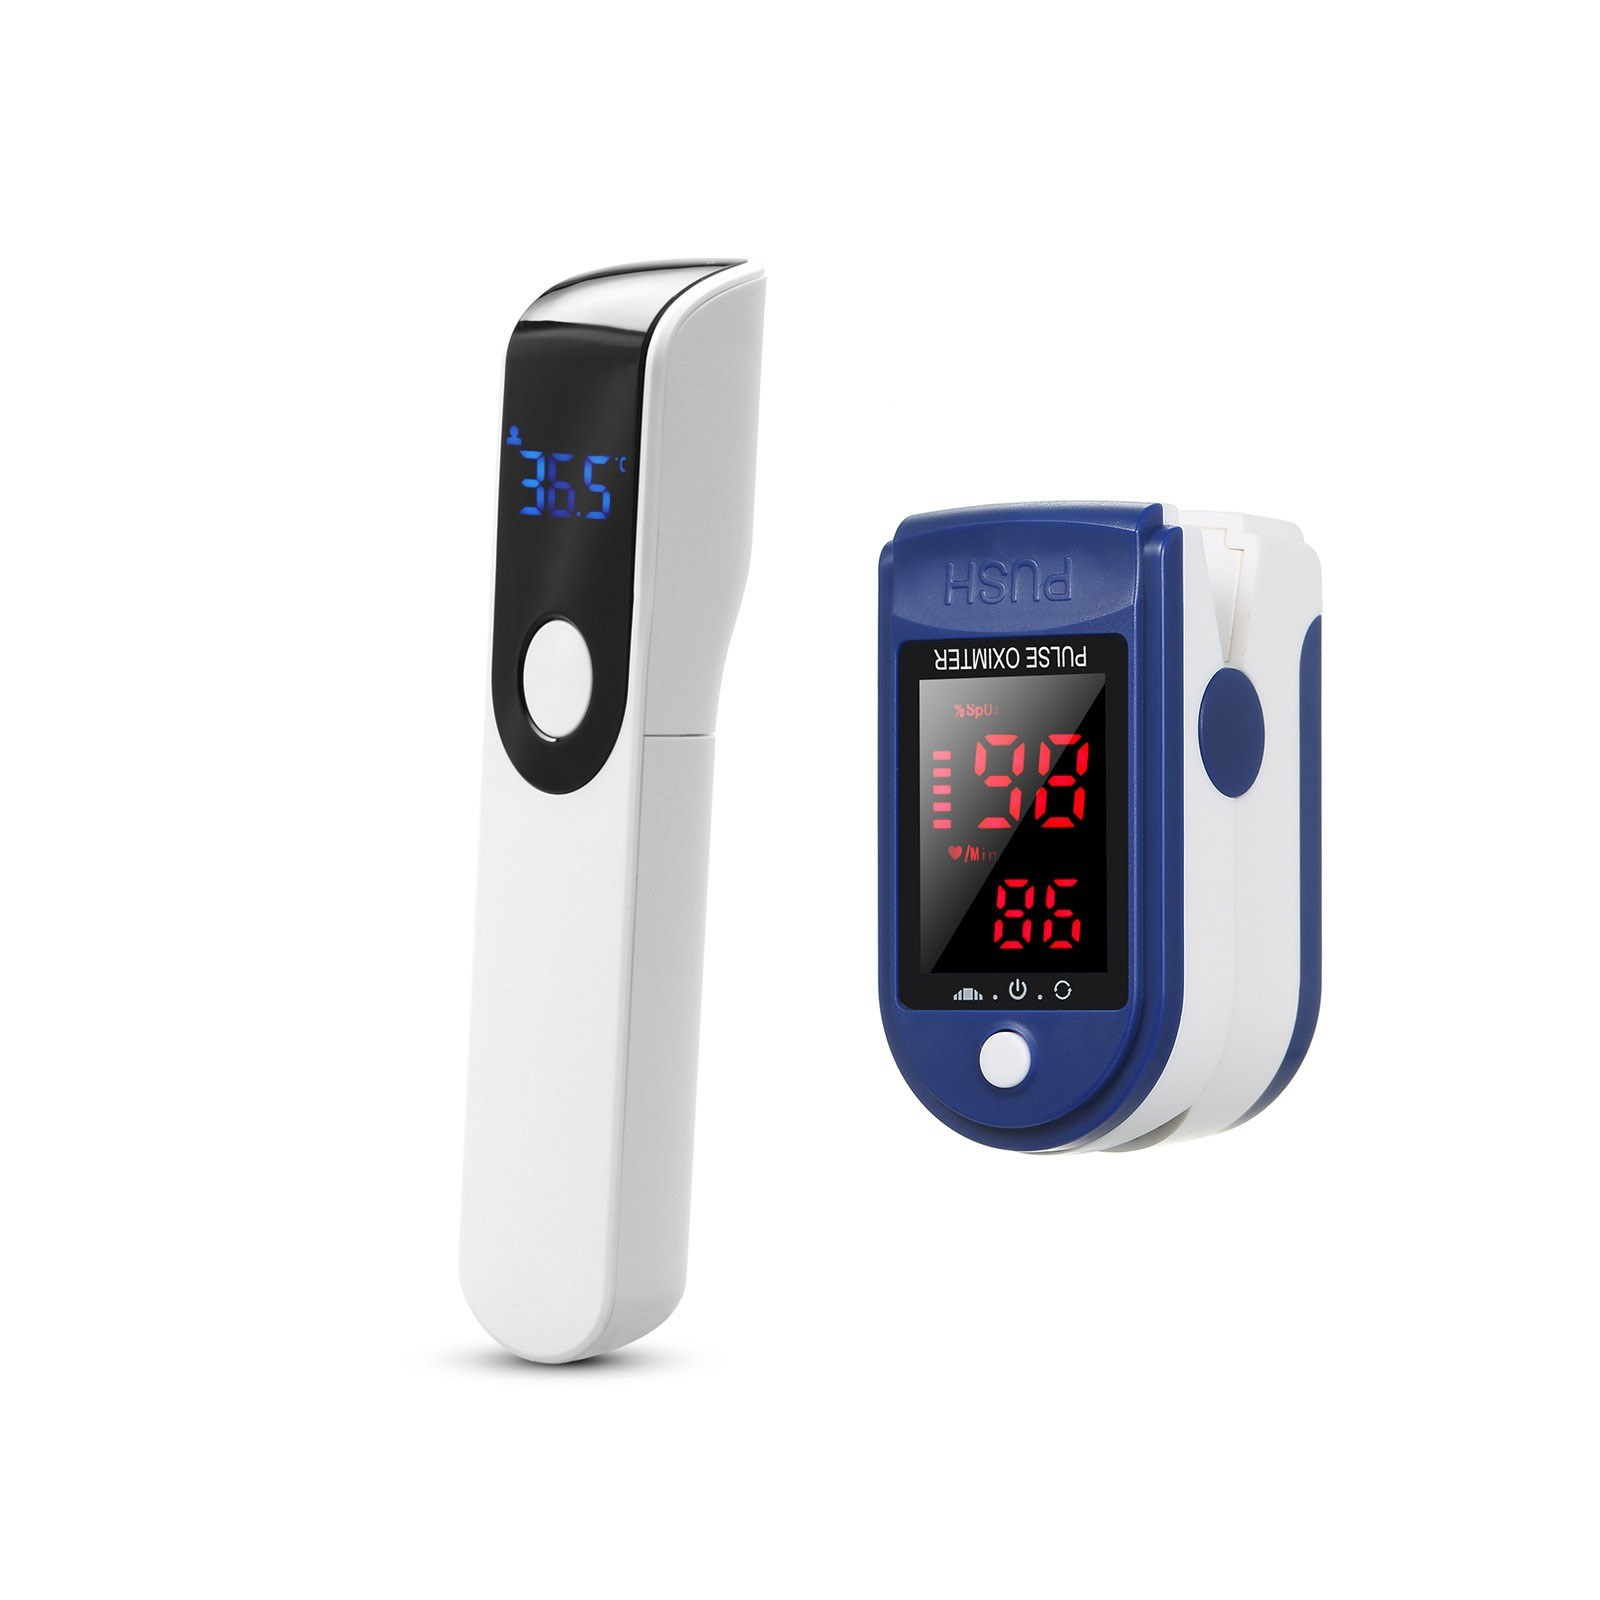 cafago.com - 82% OFF Blood Oxygen Monitor+IR-FM01 Non-Contact Thermometer,free shipping+$10.68